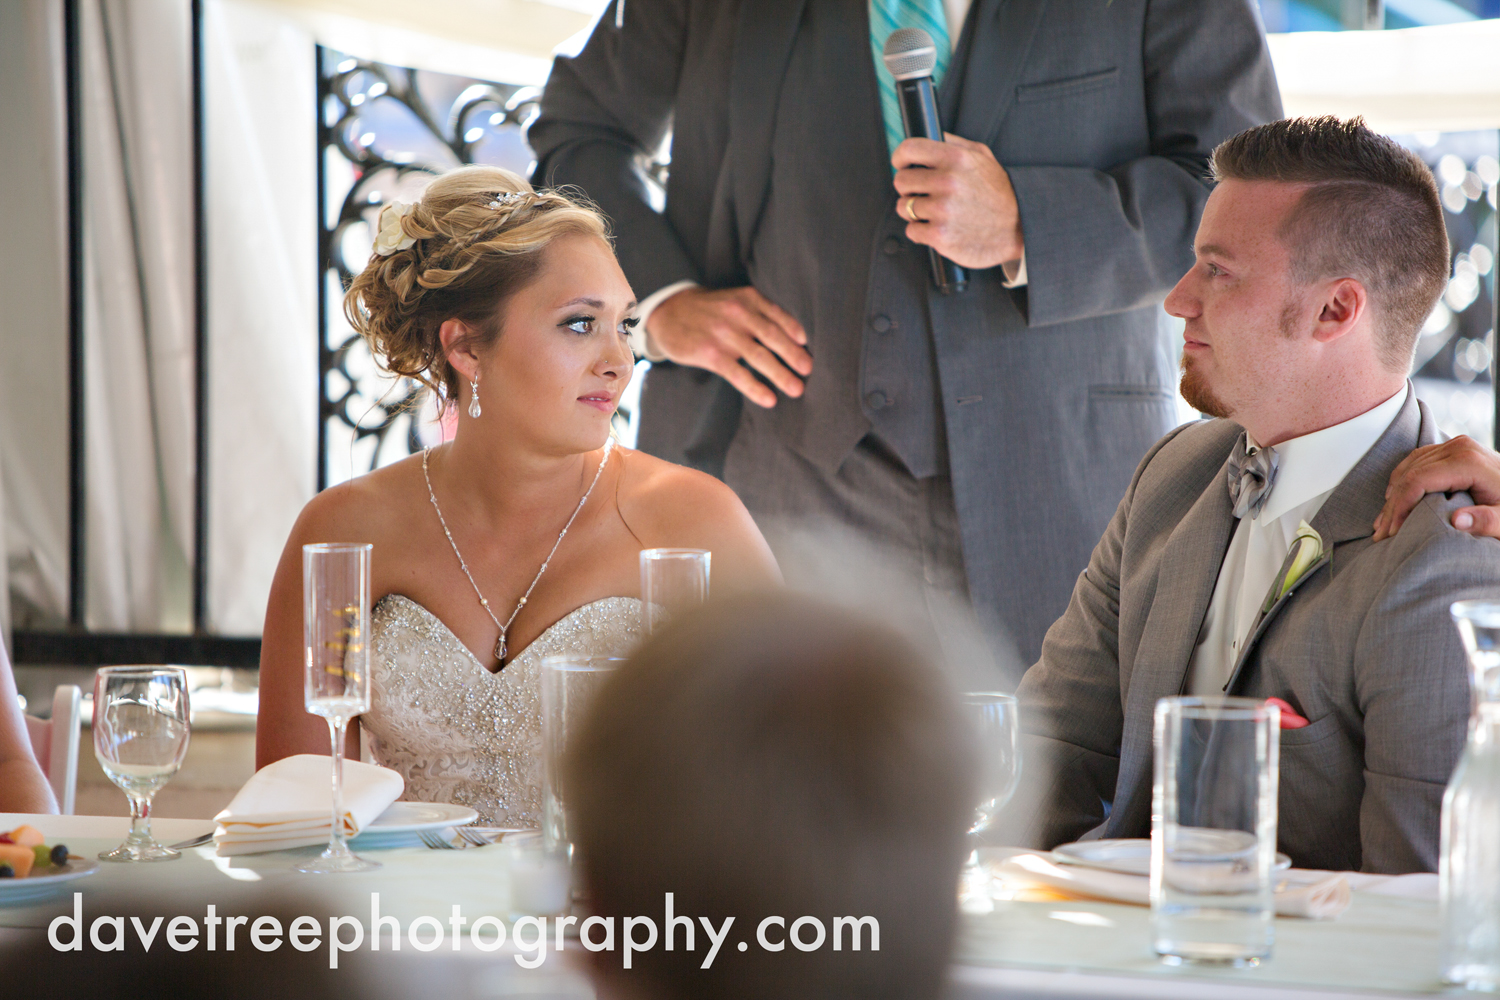 veranda_wedding_photographer_st_joseph_wedding_130.jpg